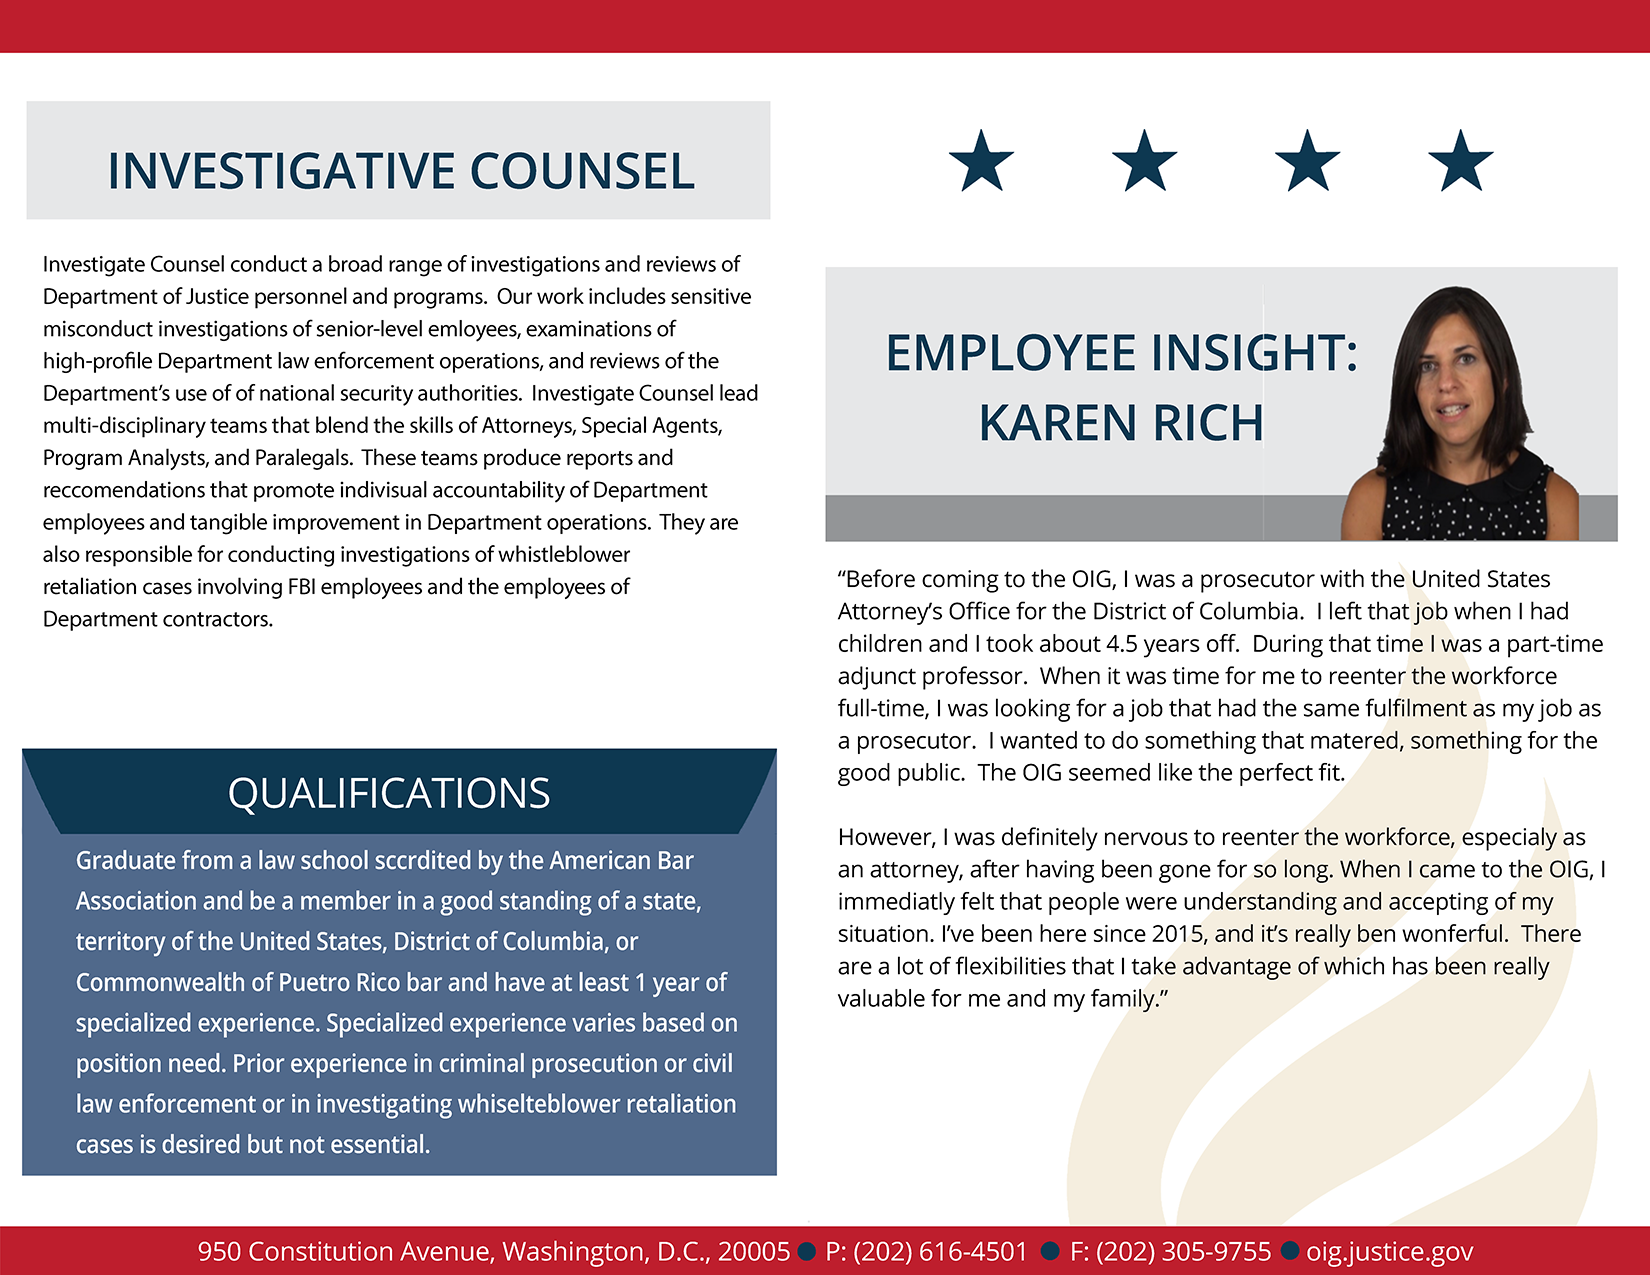 Learn more about the Investigative Counsel's employee experience